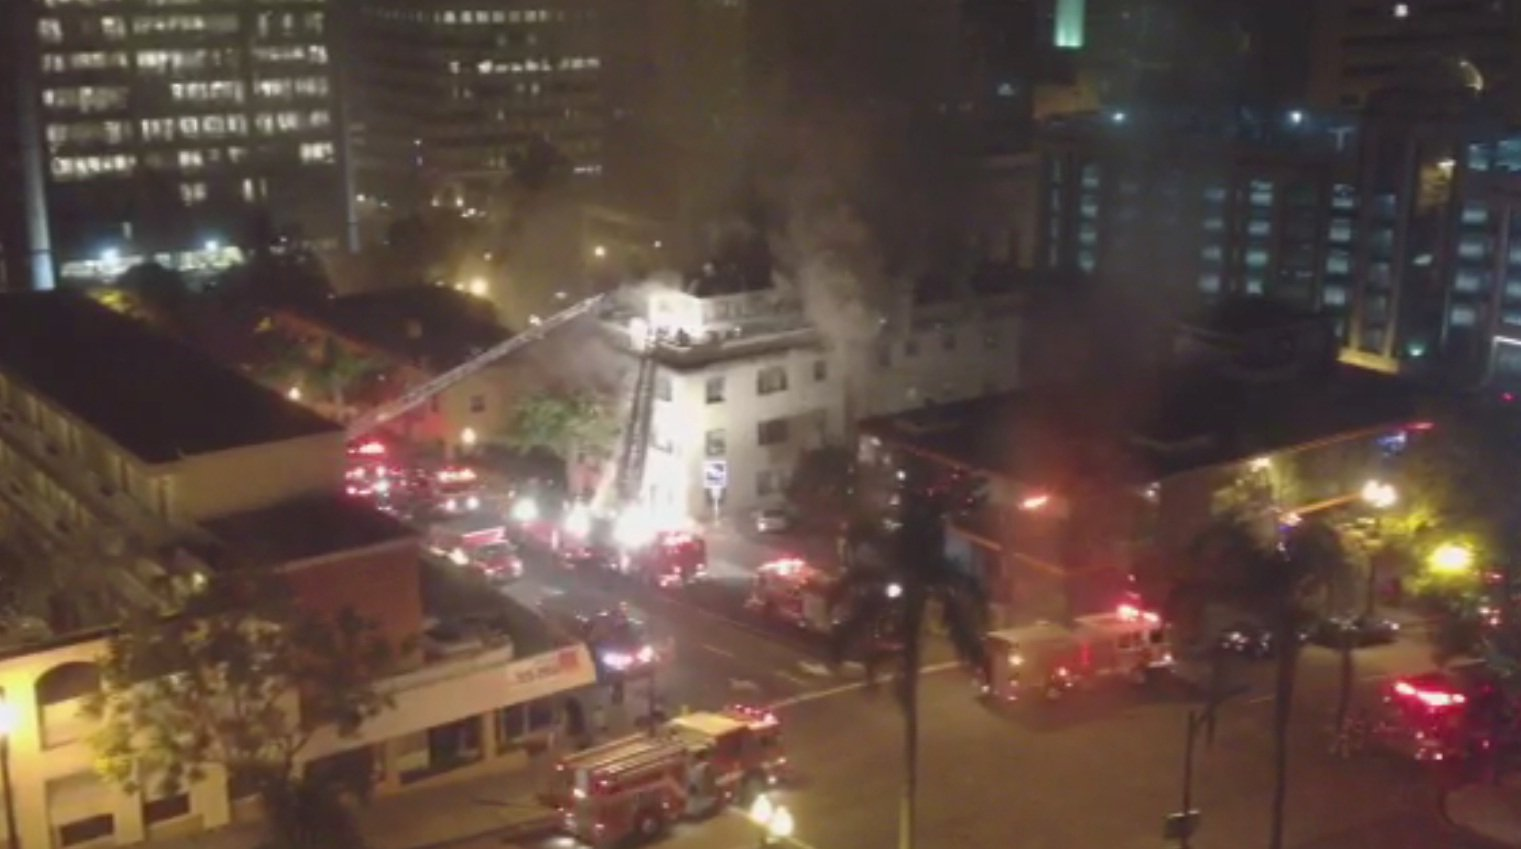 Picture courtesy of Heather Olson; shot from the 7th flr of El Cortez bldg